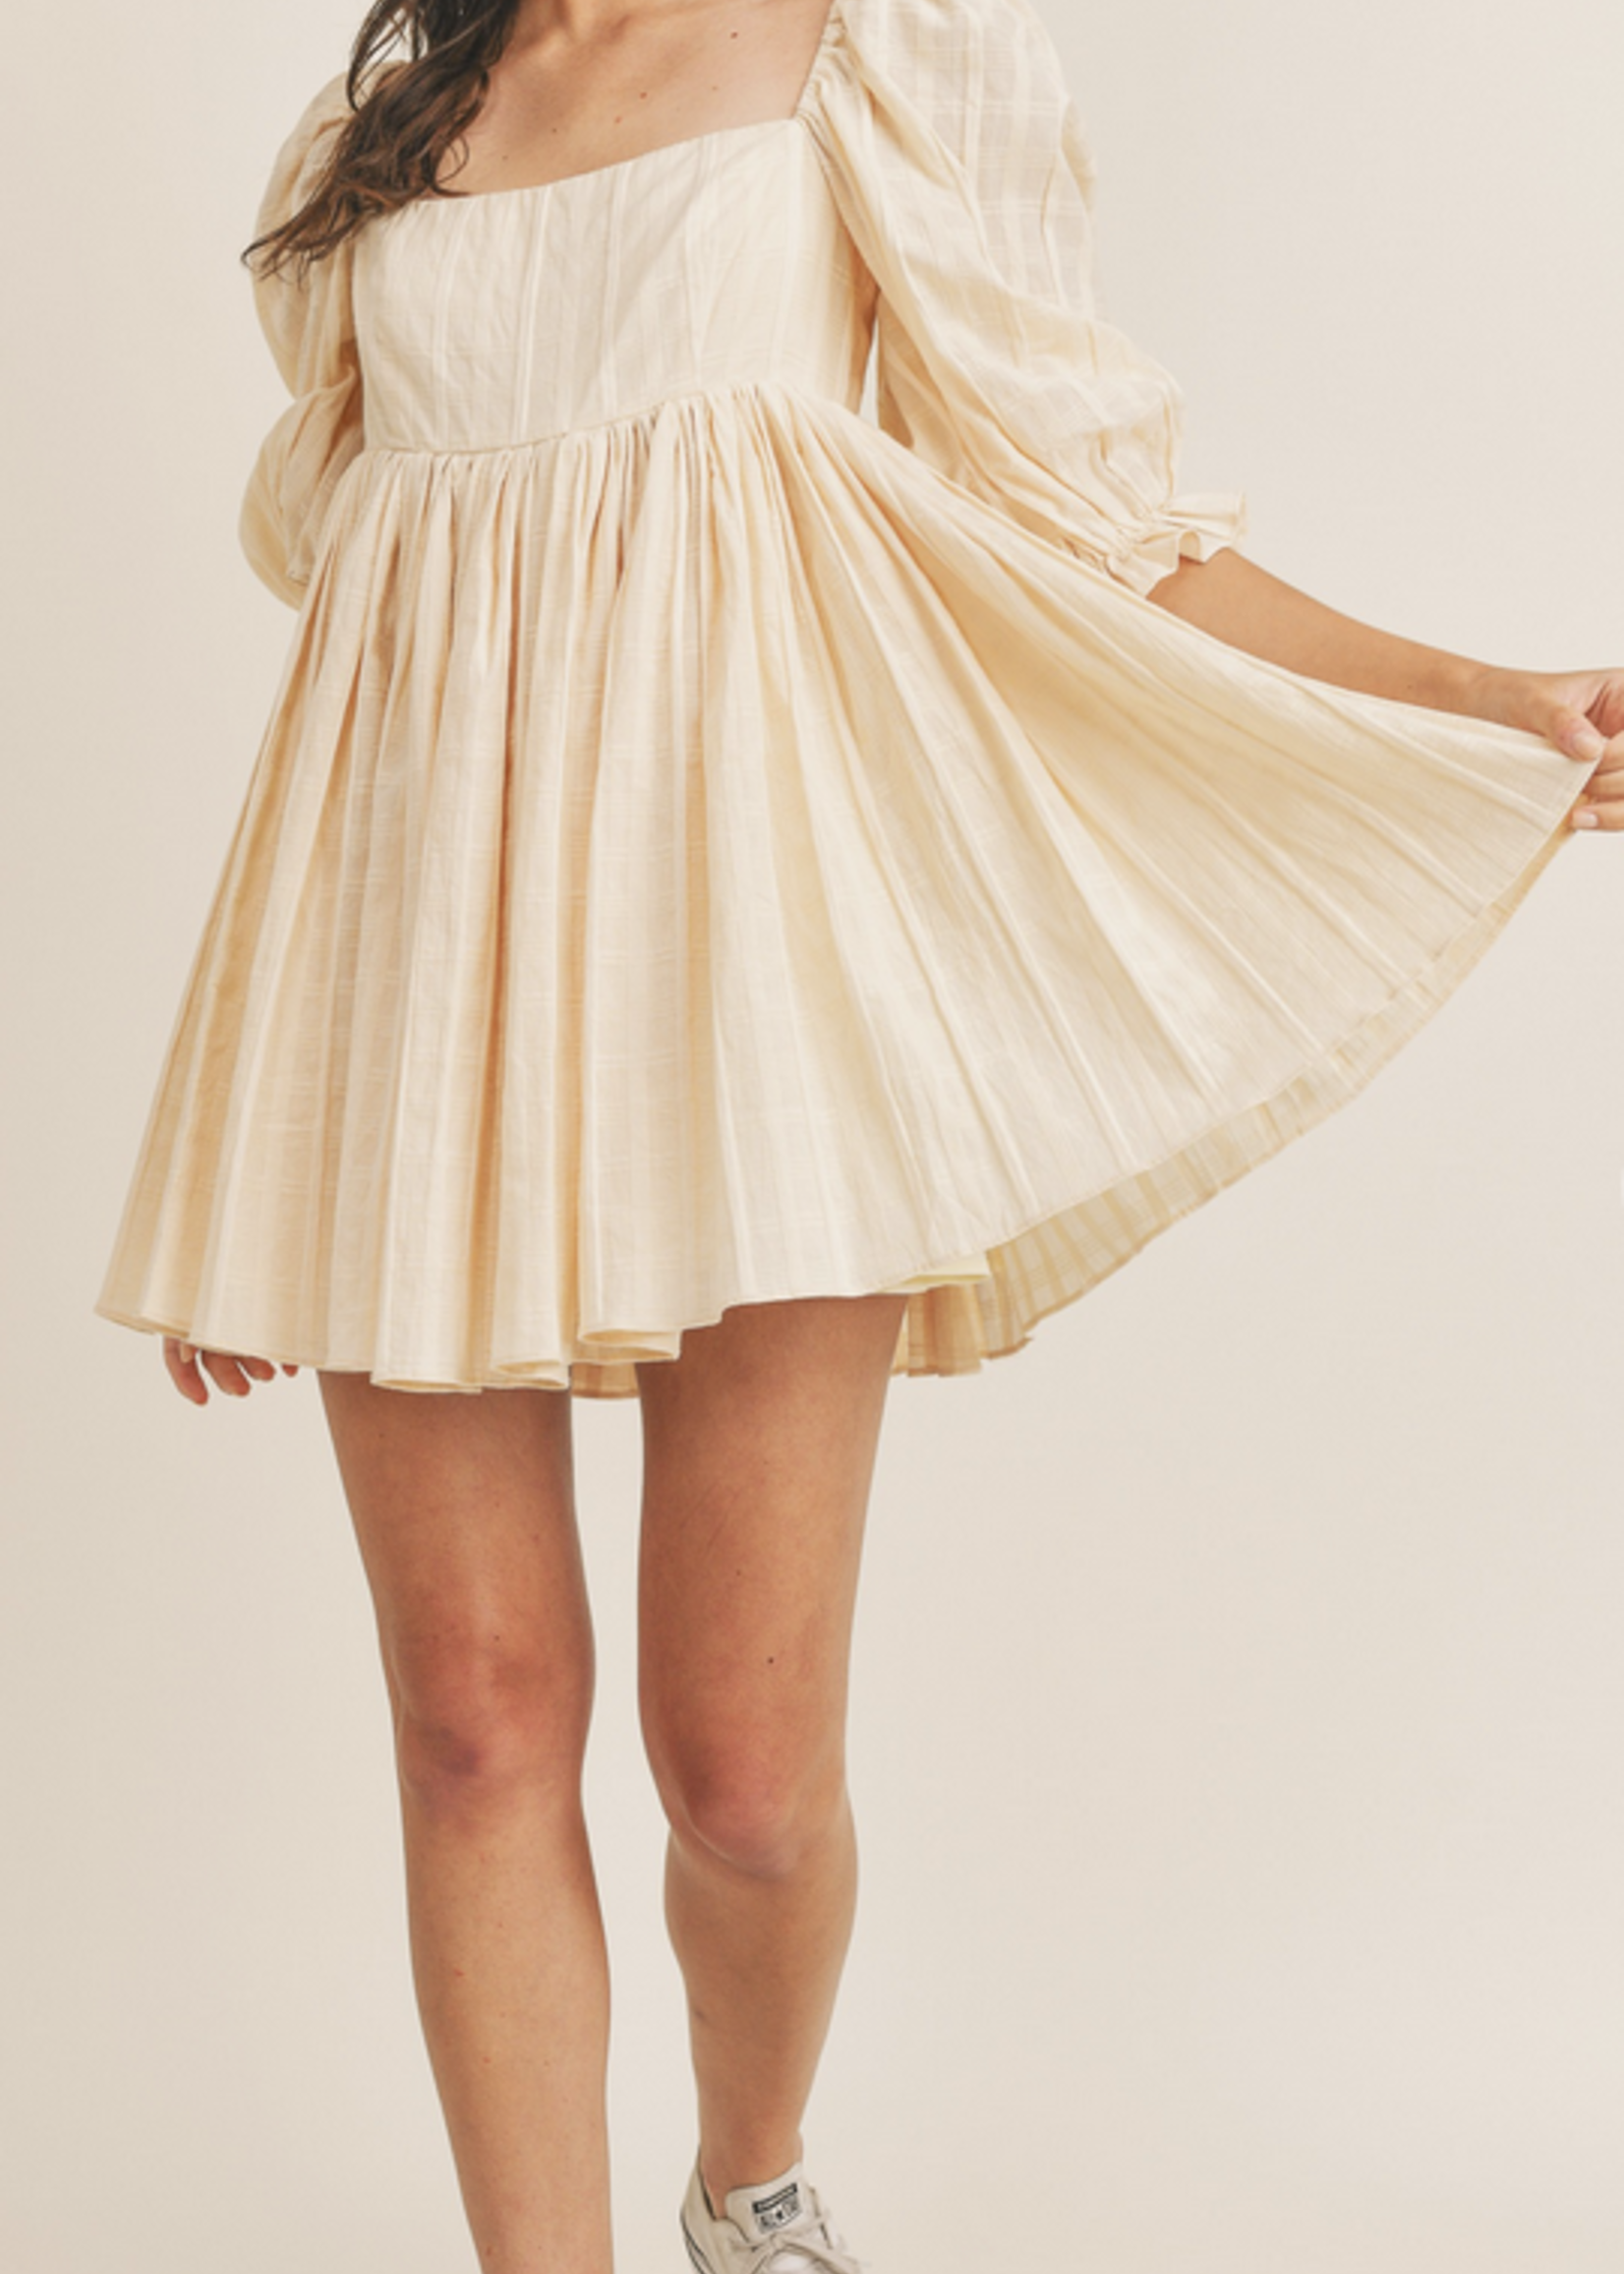 mable carrie dress